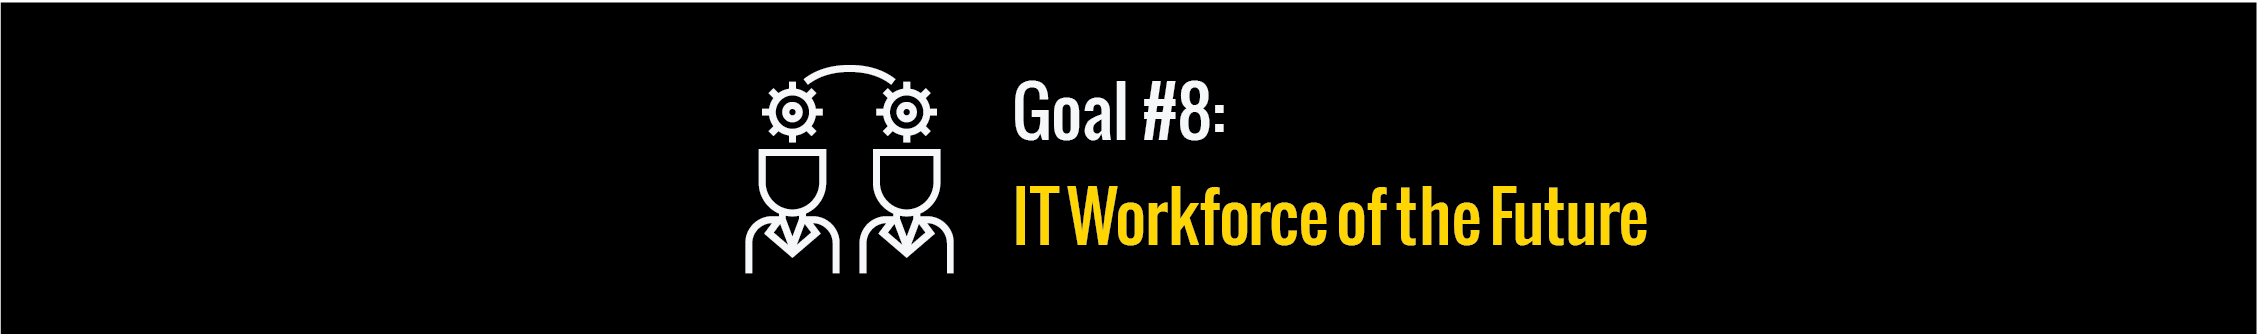 Goal #8: IT Workforce of the Future